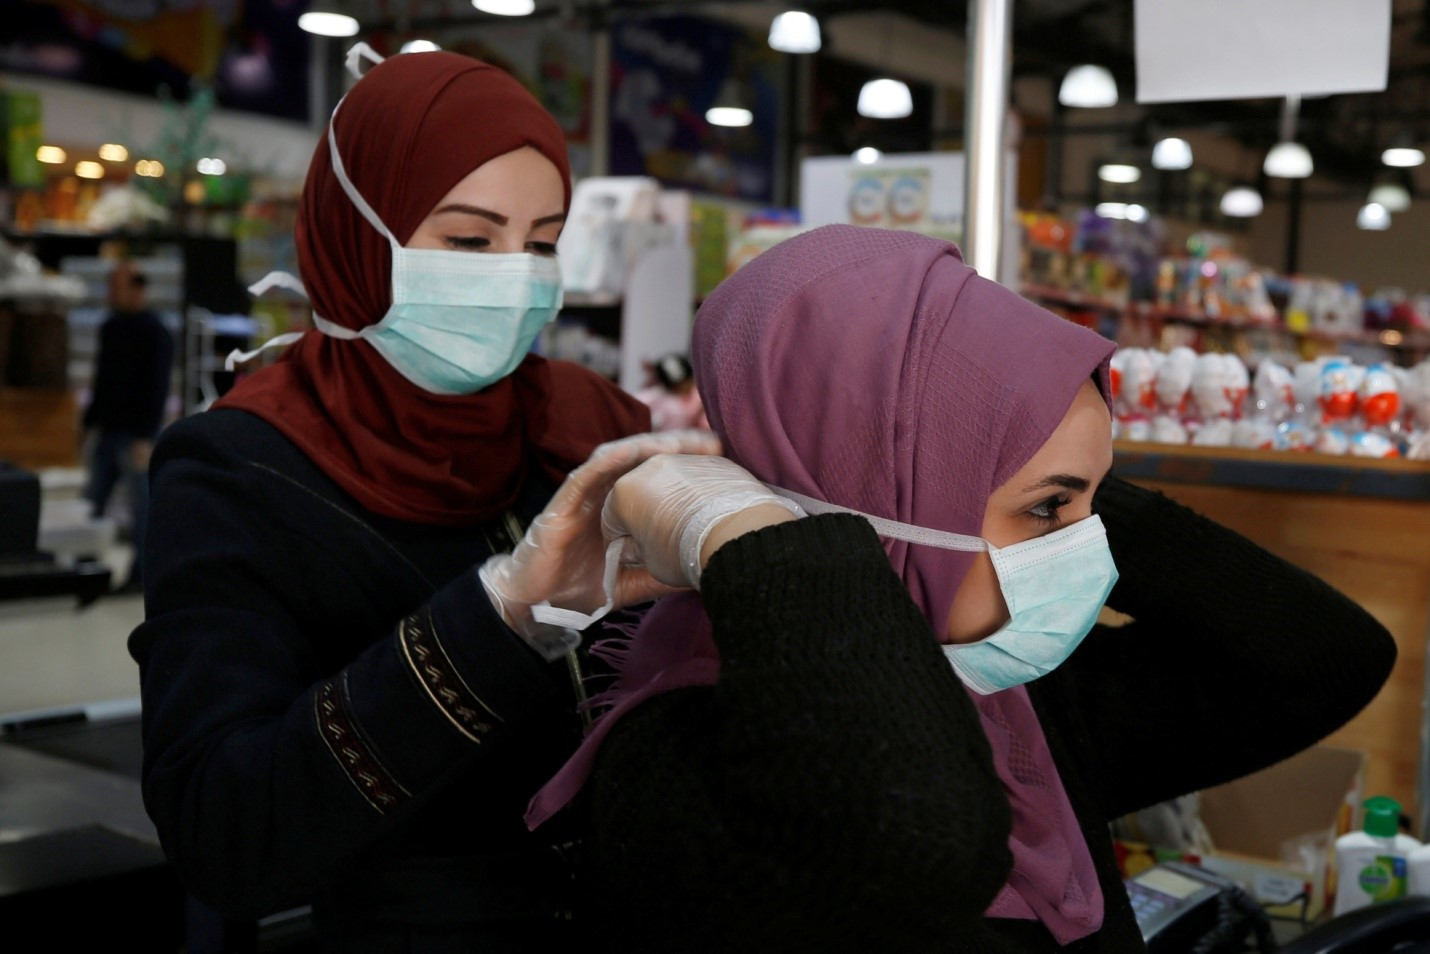 UAE Praised for Protecting Women amid Covid-19 Outbreak